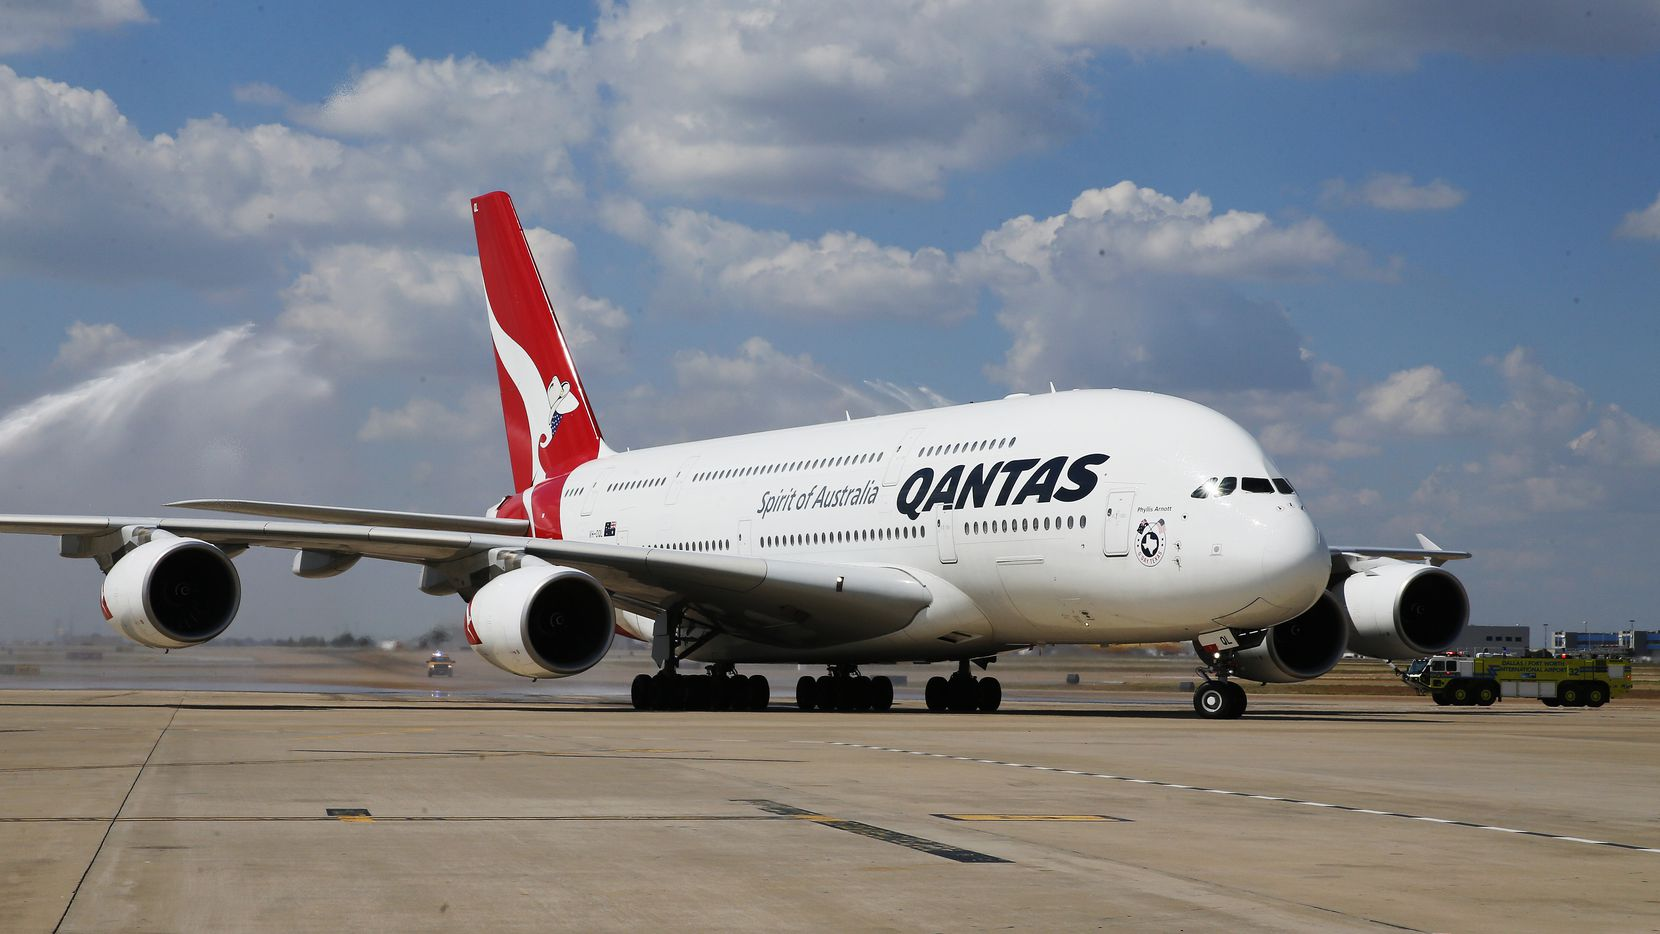 The first Qantas A380 airplane arrived at Dallas/Fort Worth International Airport in Sept. 2014 for the airline's first outbound flight from DFW to Australia that day.